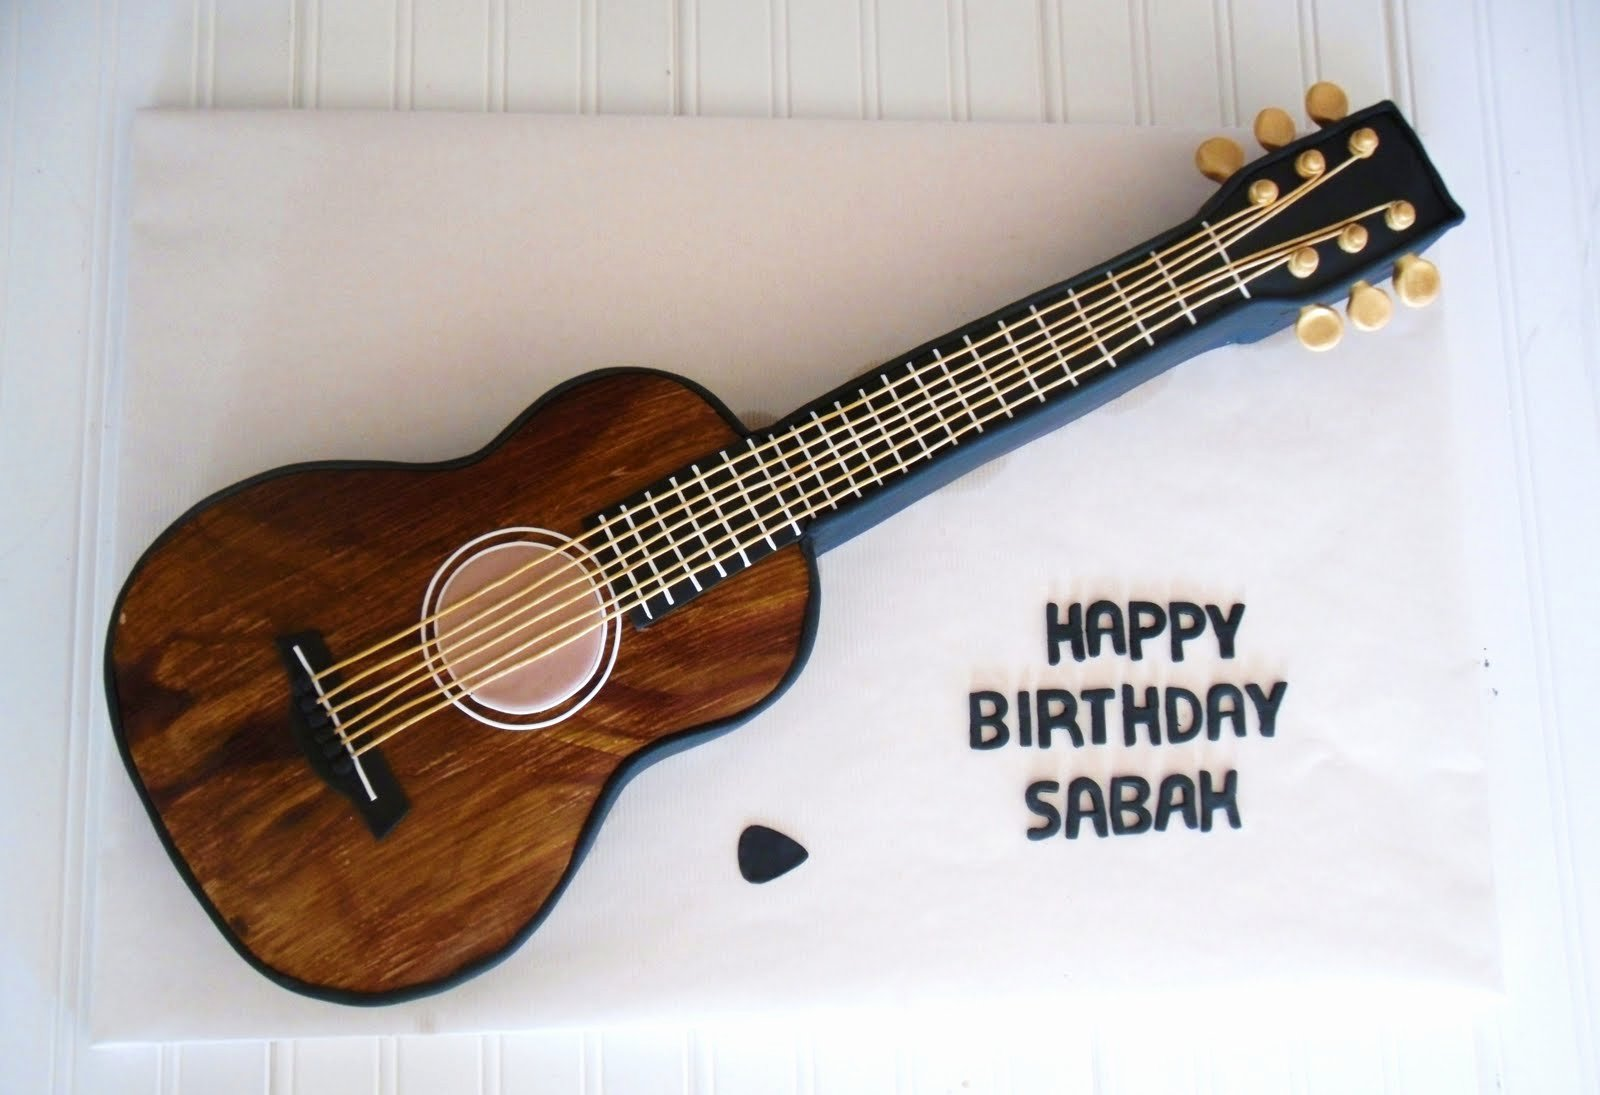 Guitar Cake Template Awesome Guitar Cake Template Hashtag Bg